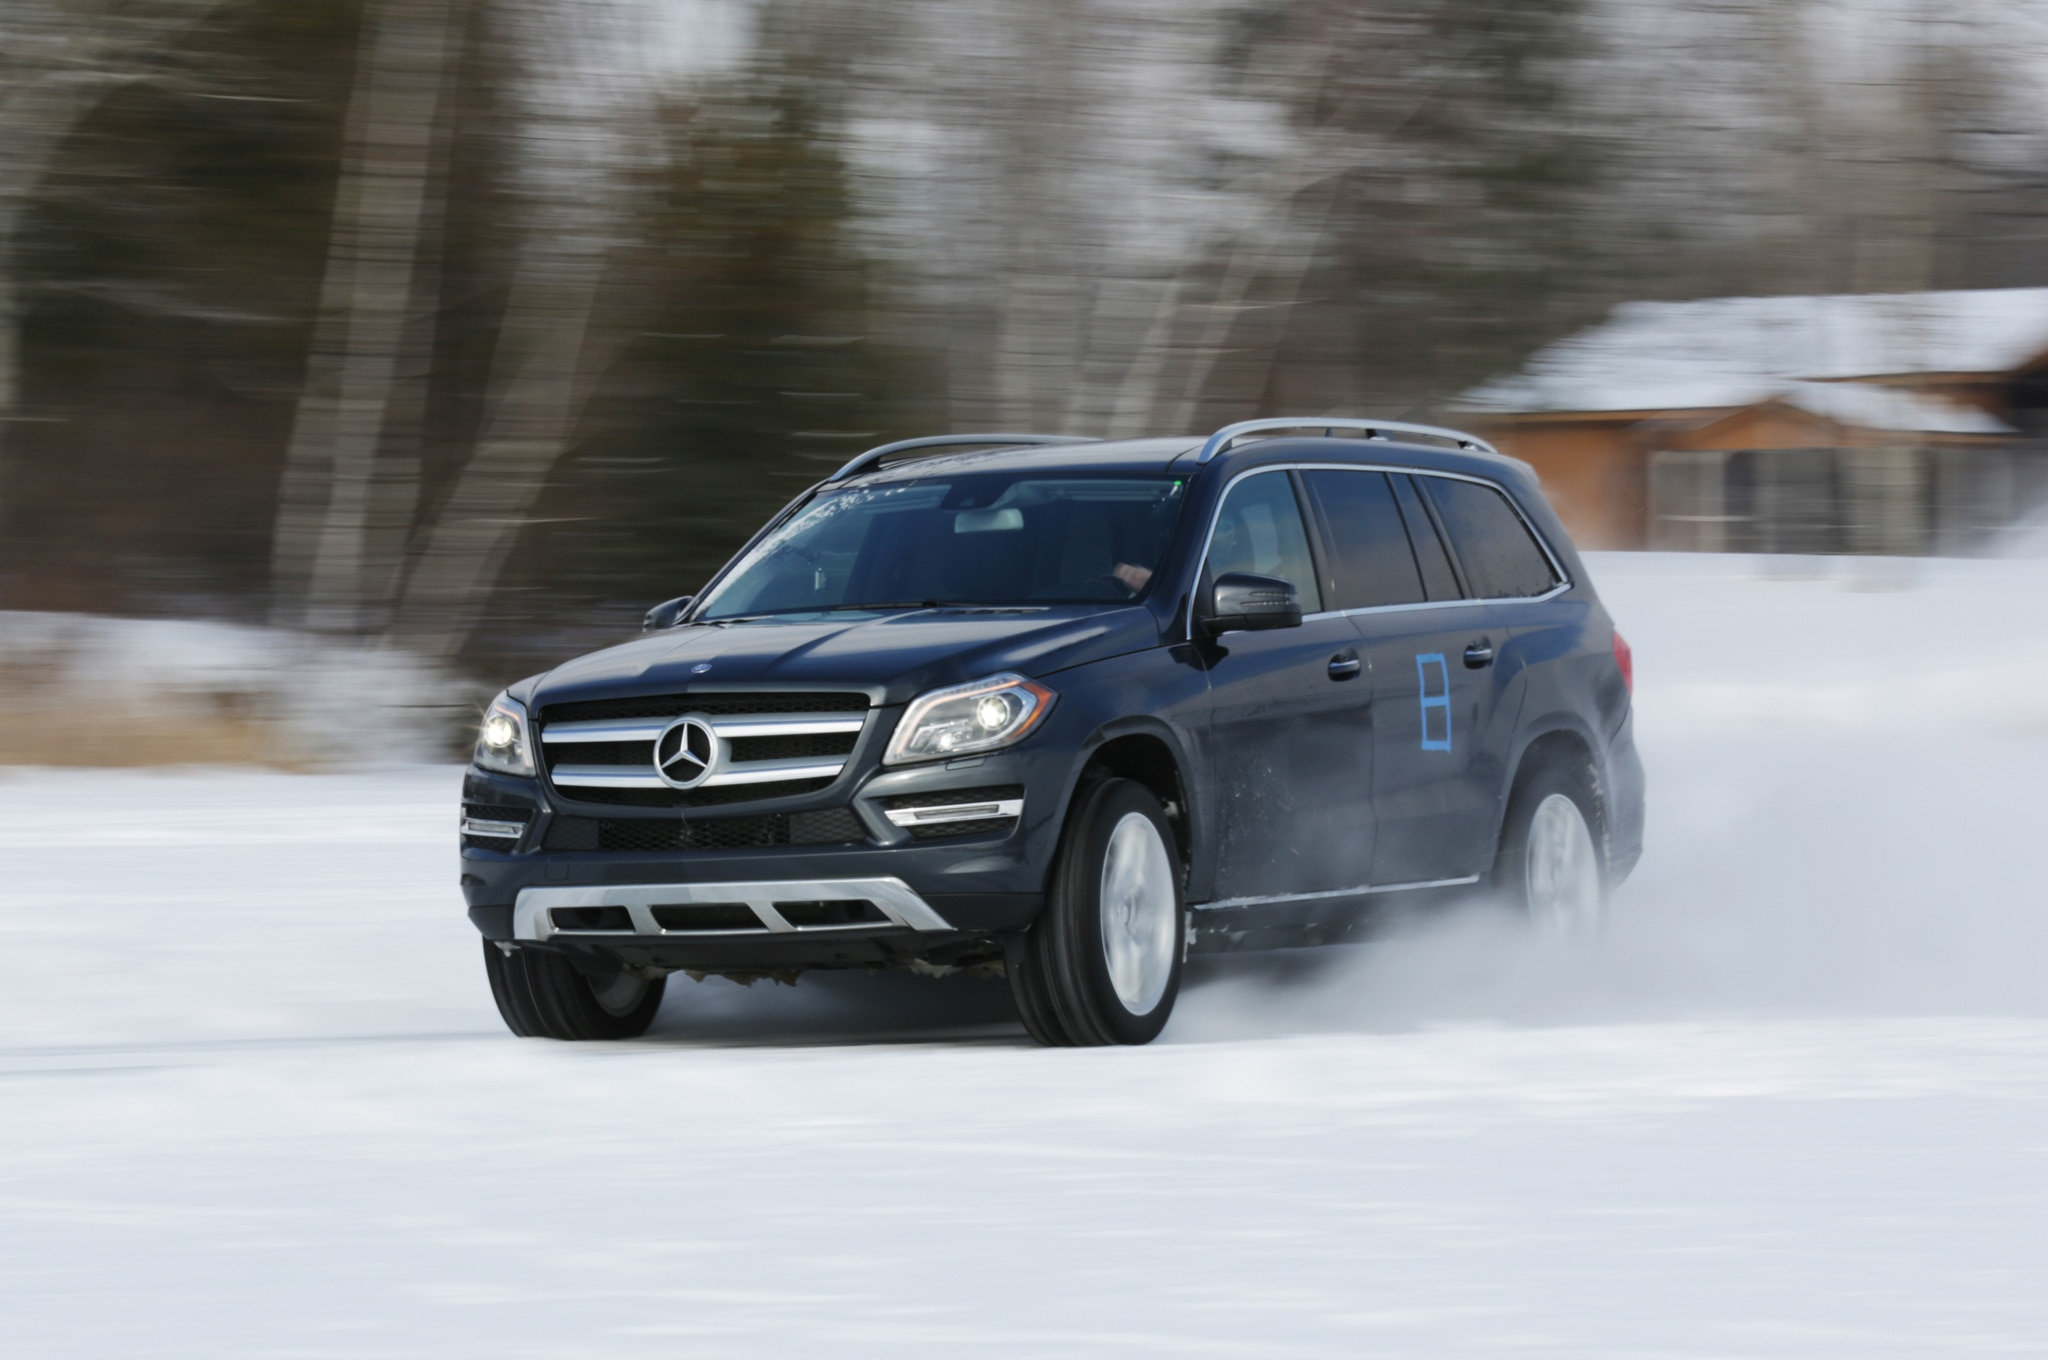 2013 Mercedes-Benz GL450 Goes Ice Racing - Four Seasons Update